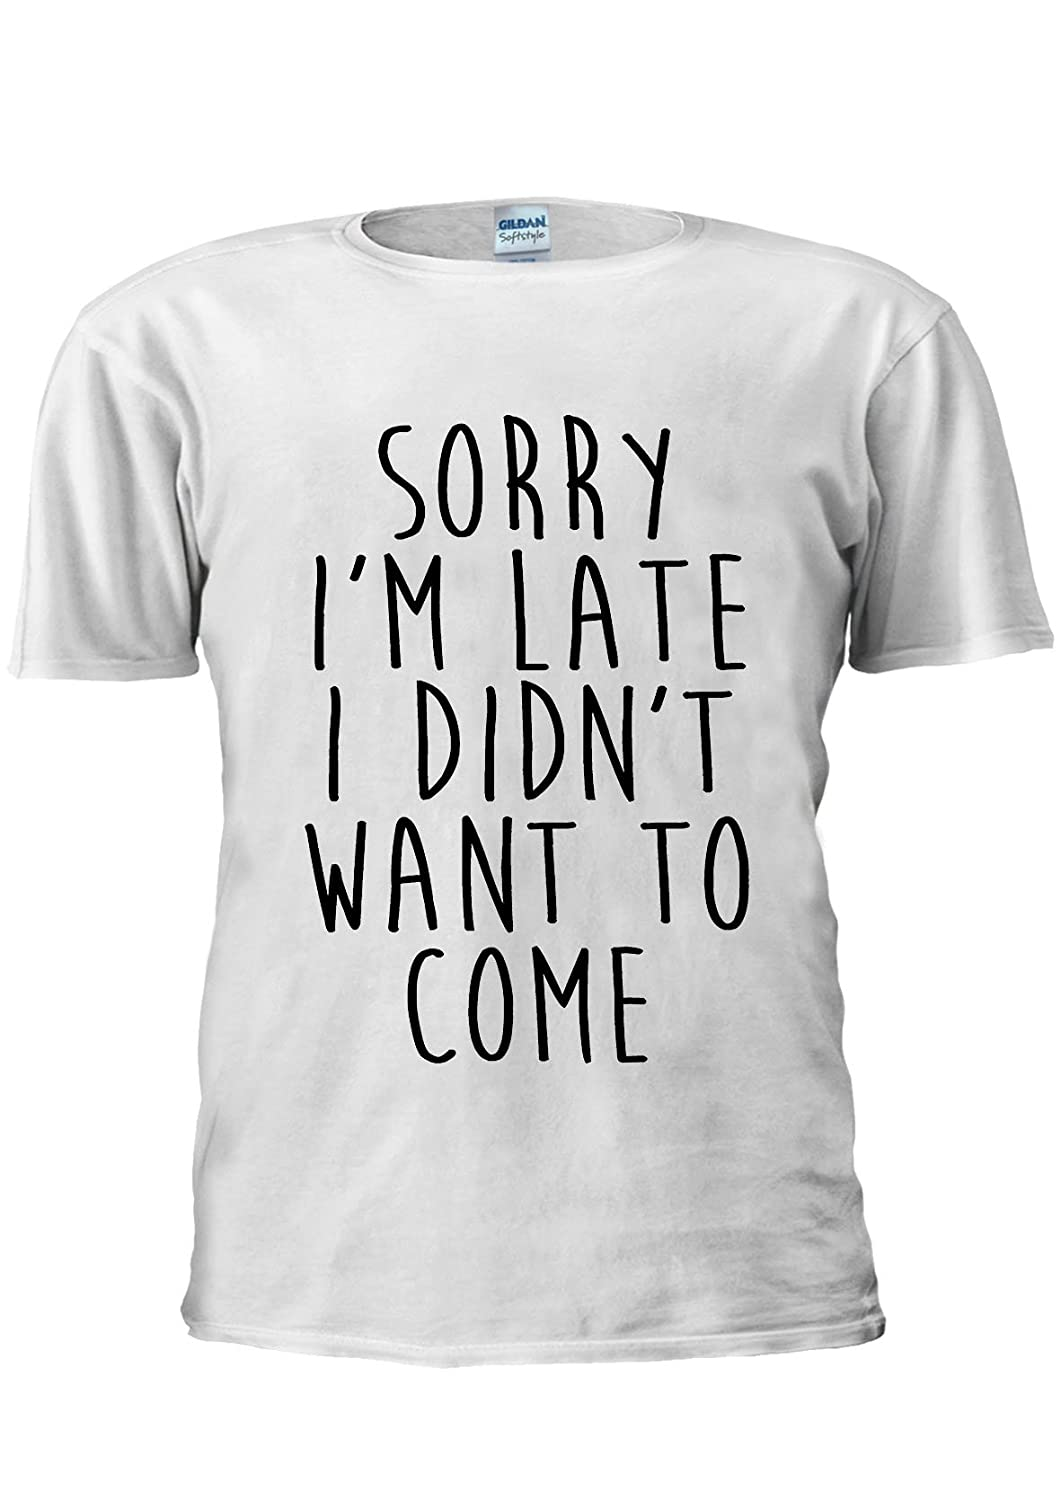 174521f72 NisabellaLTD Sorry I'm Late I Didn't Want to Come Unisex T Shirt Top Men  Women Ladies: Amazon.co.uk: Clothing